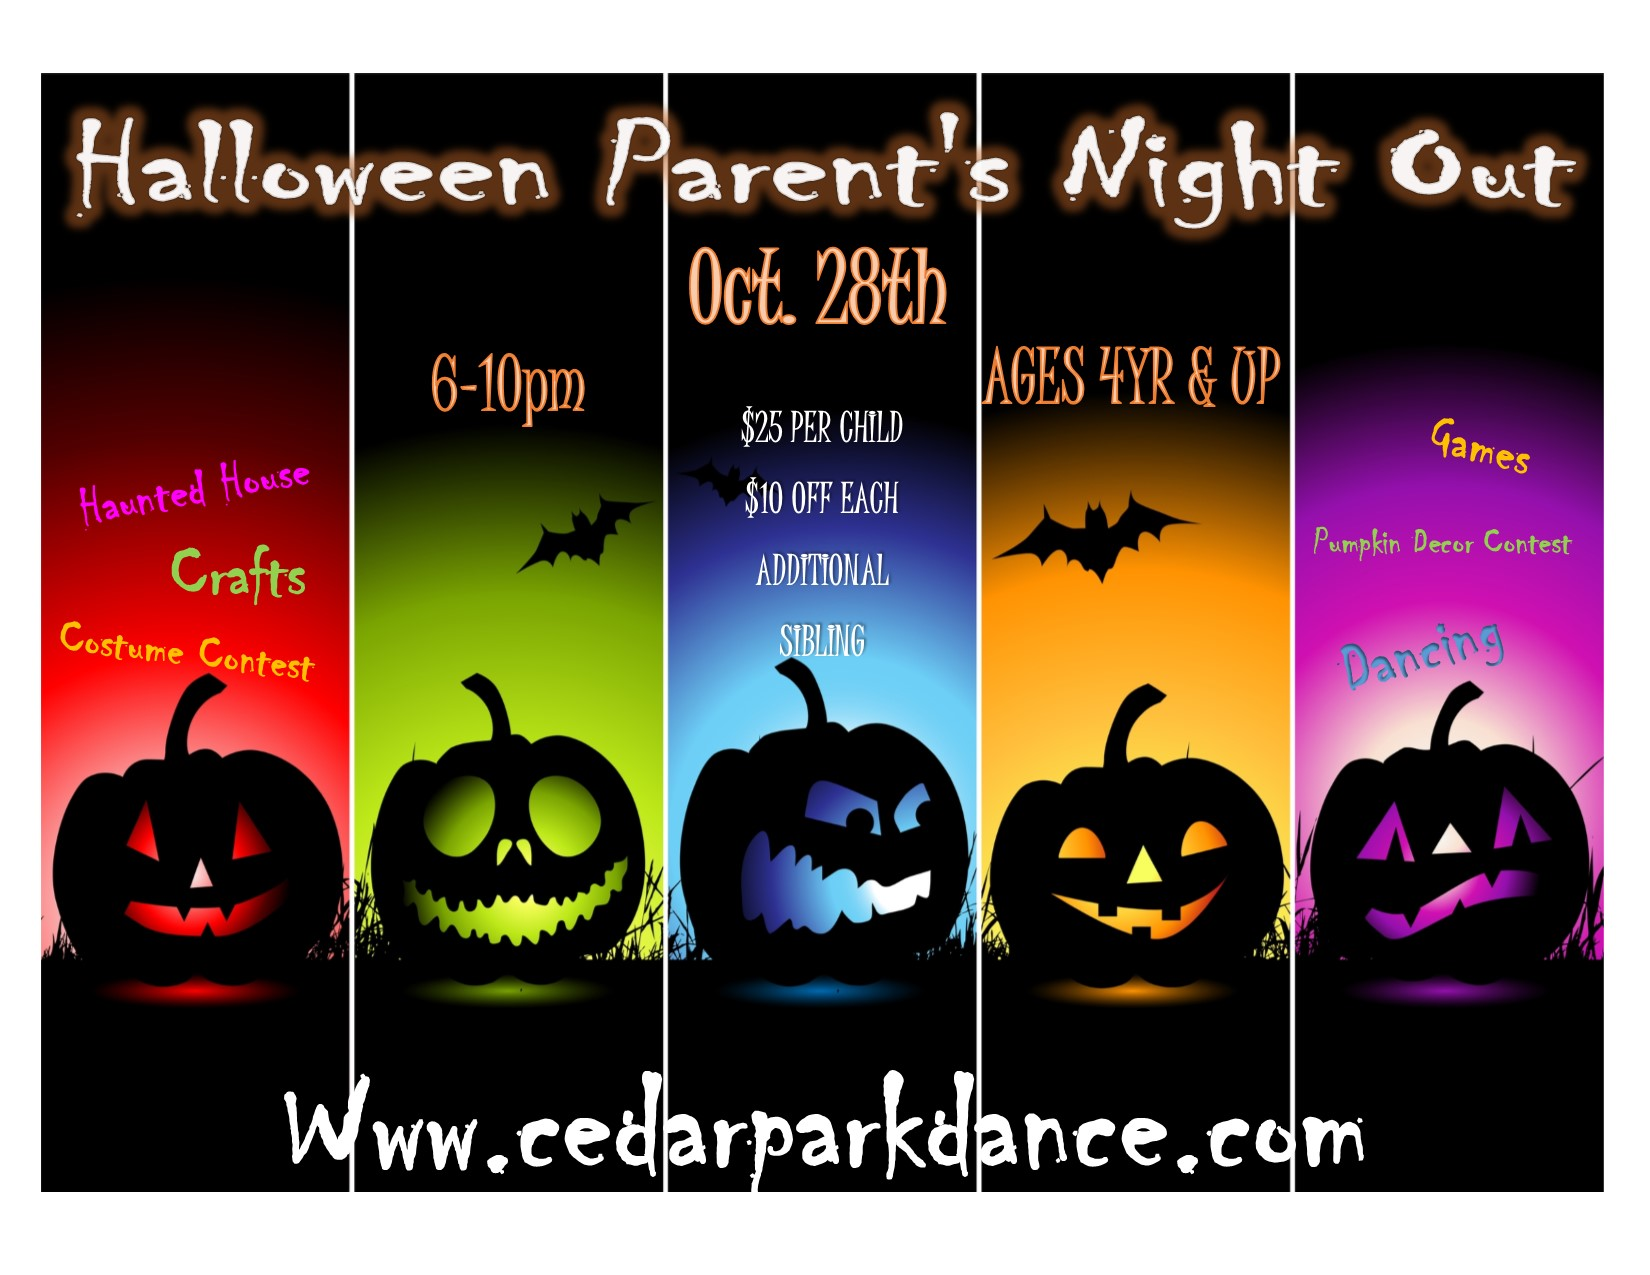 Halloween Party (Parent's Night Out)